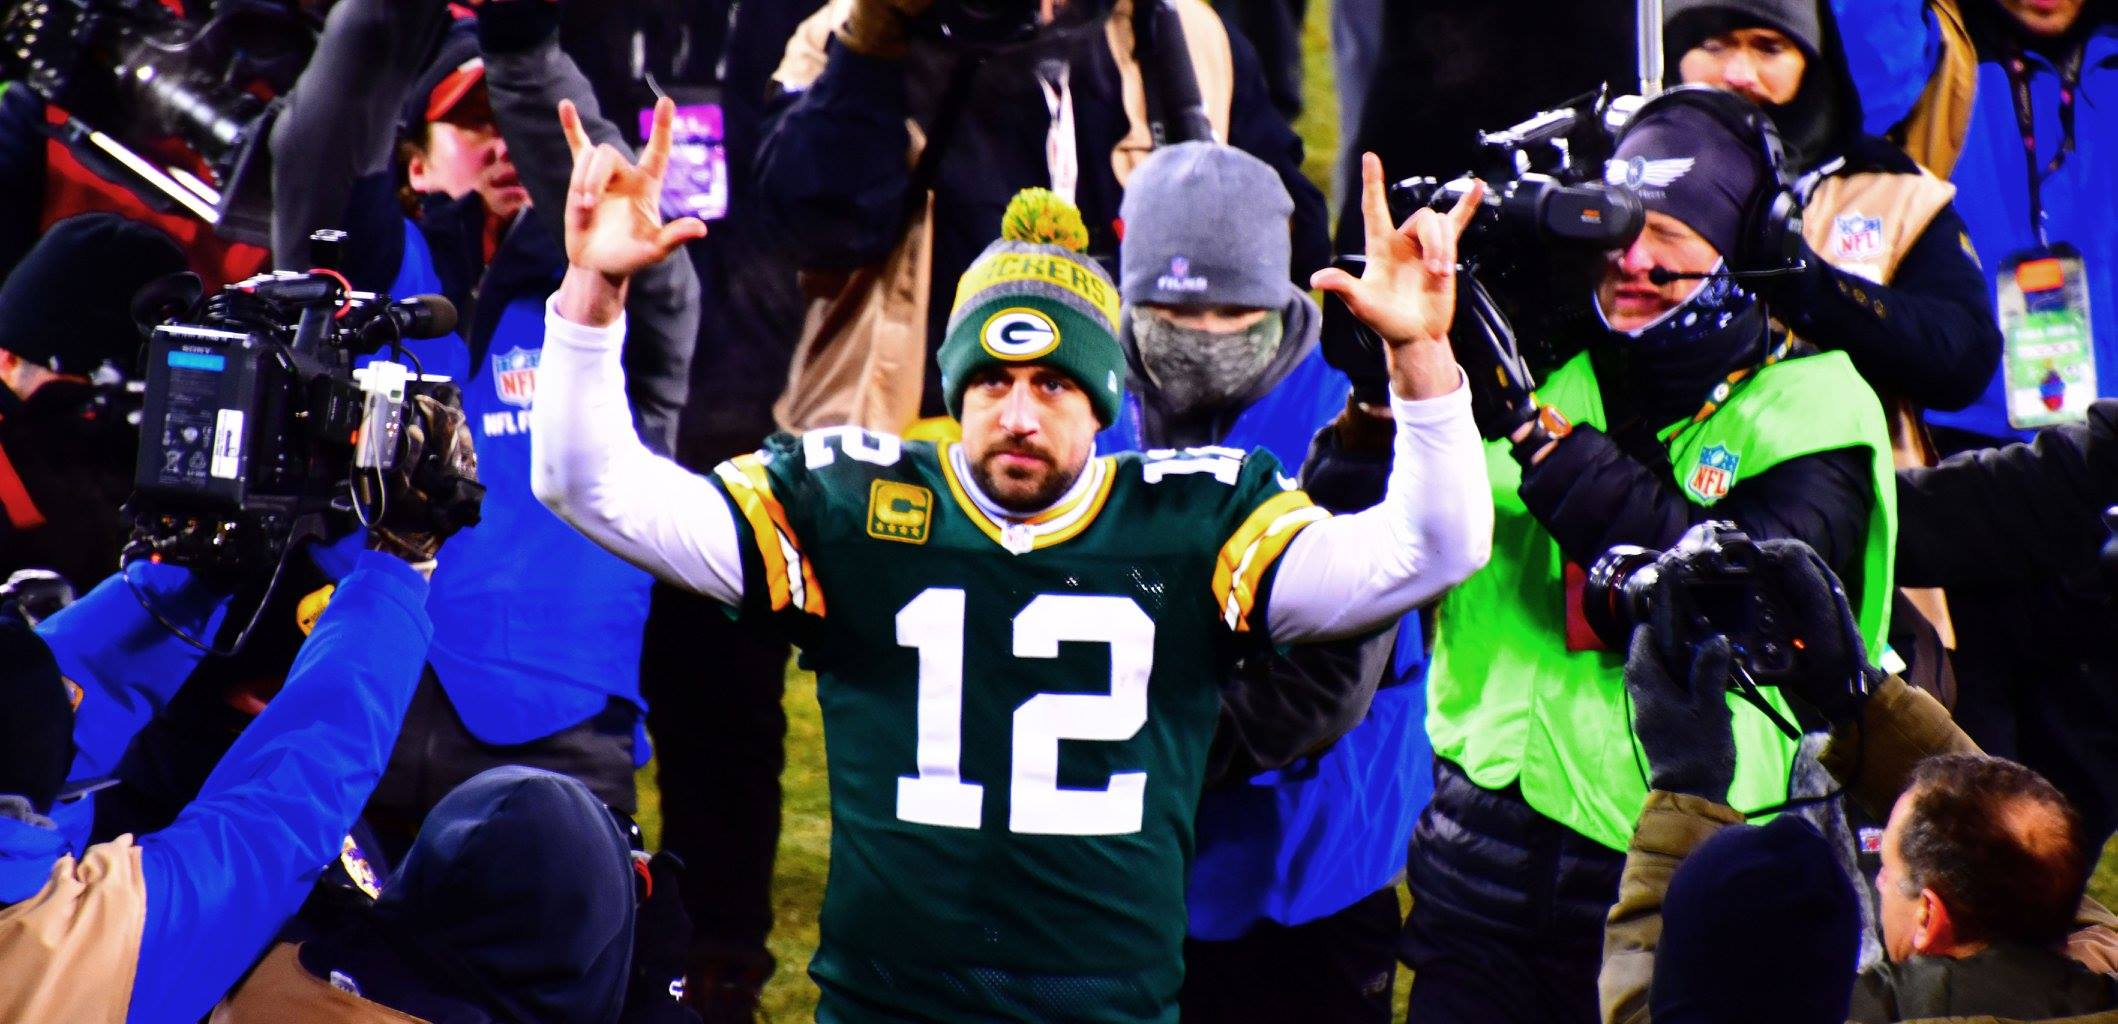 4 Predictions for Aaron Rodgers's Next Off-Field Project